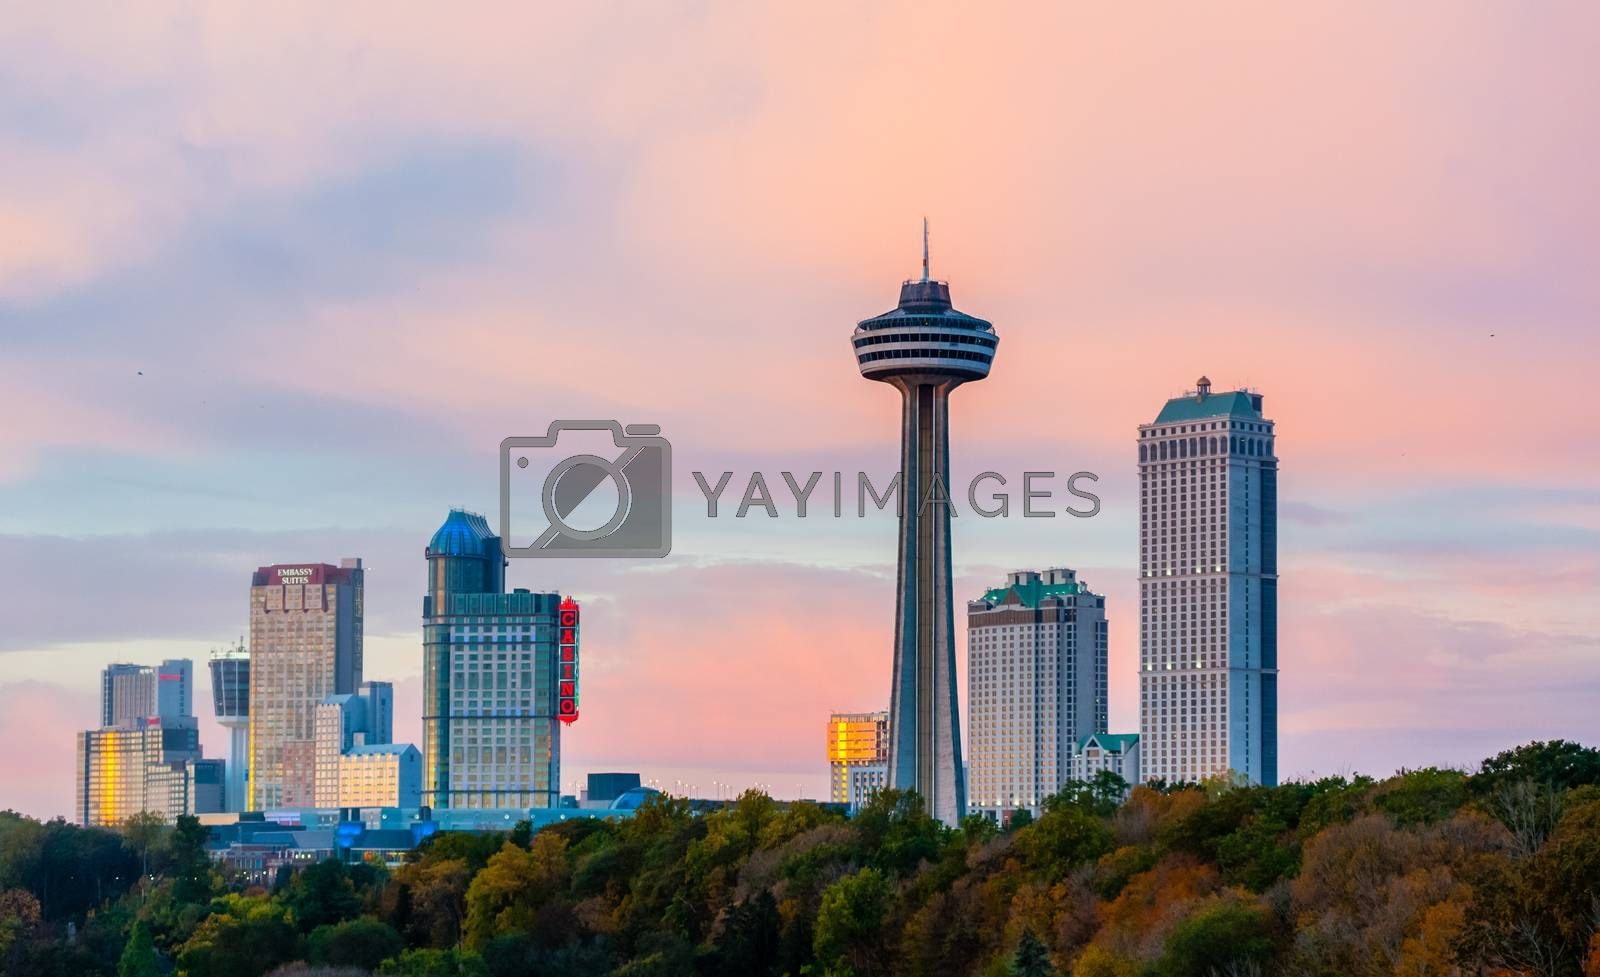 NIAGARA FALLS, CANADA - OCTOBER 27, 2017: Hotels, casinos, and the Skylon Tower dominate the city skyline at sunset.